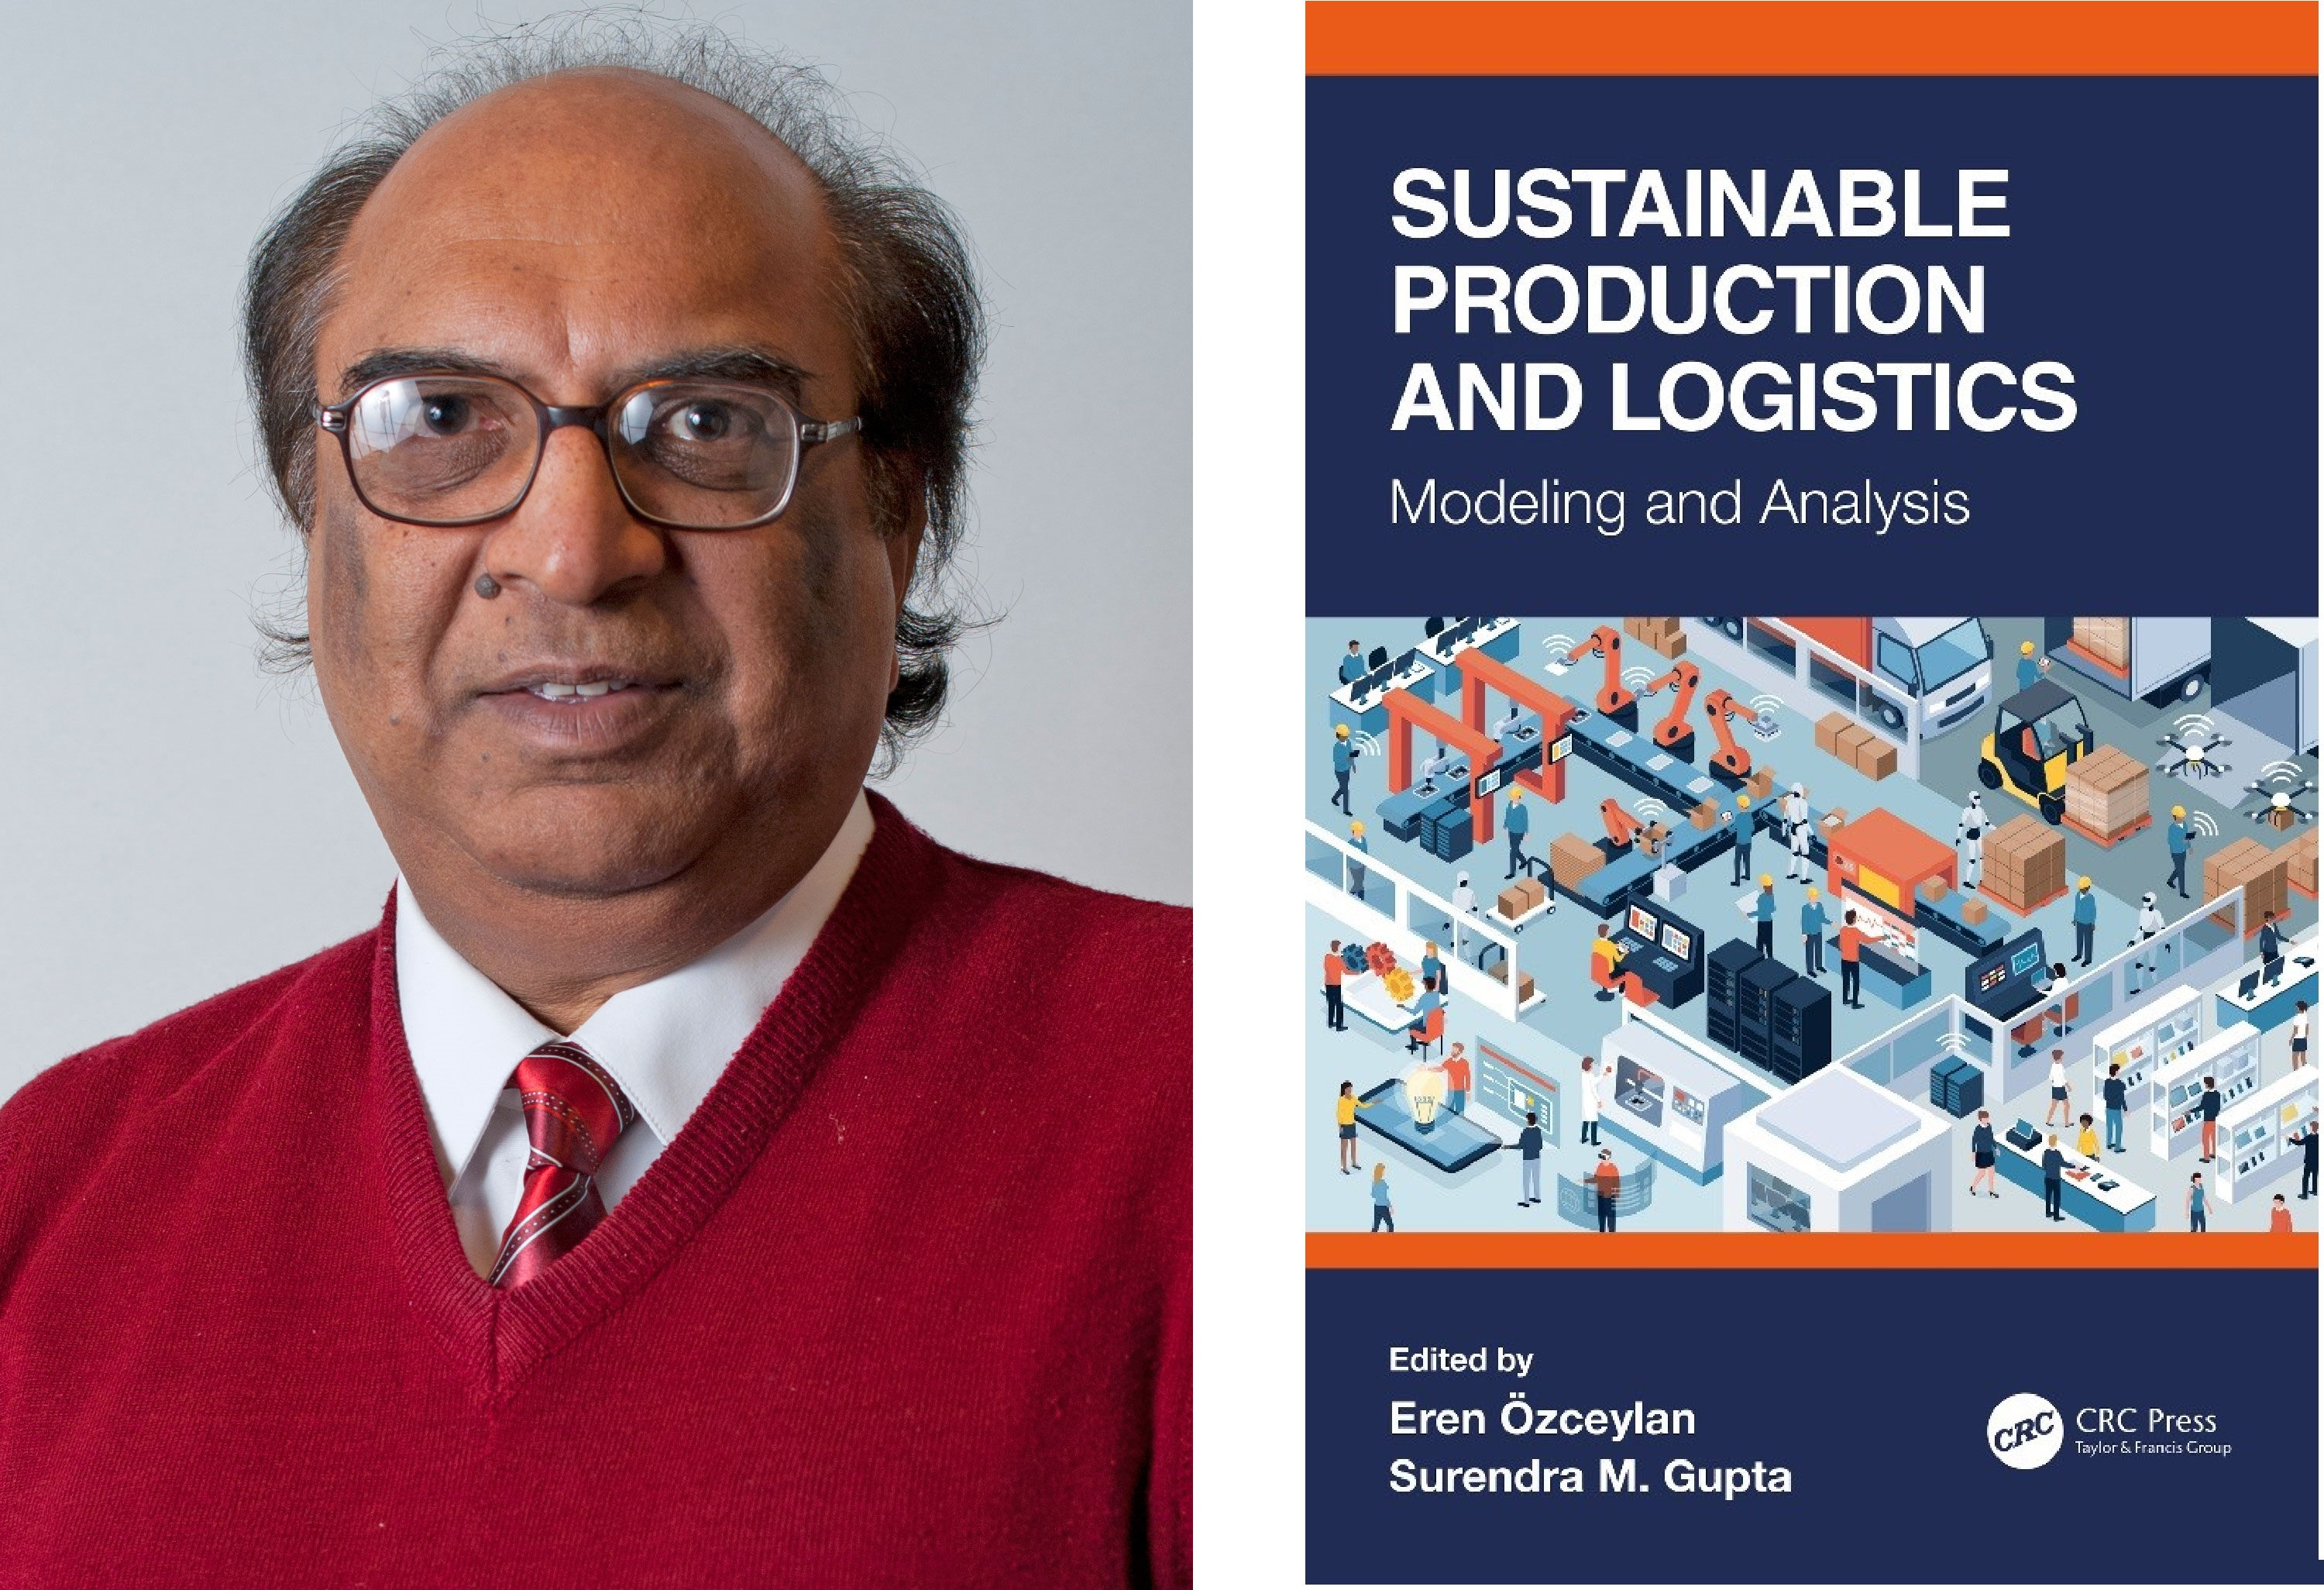 portrait of Surendra M. Gupta and cover of sustainable production and logistics book